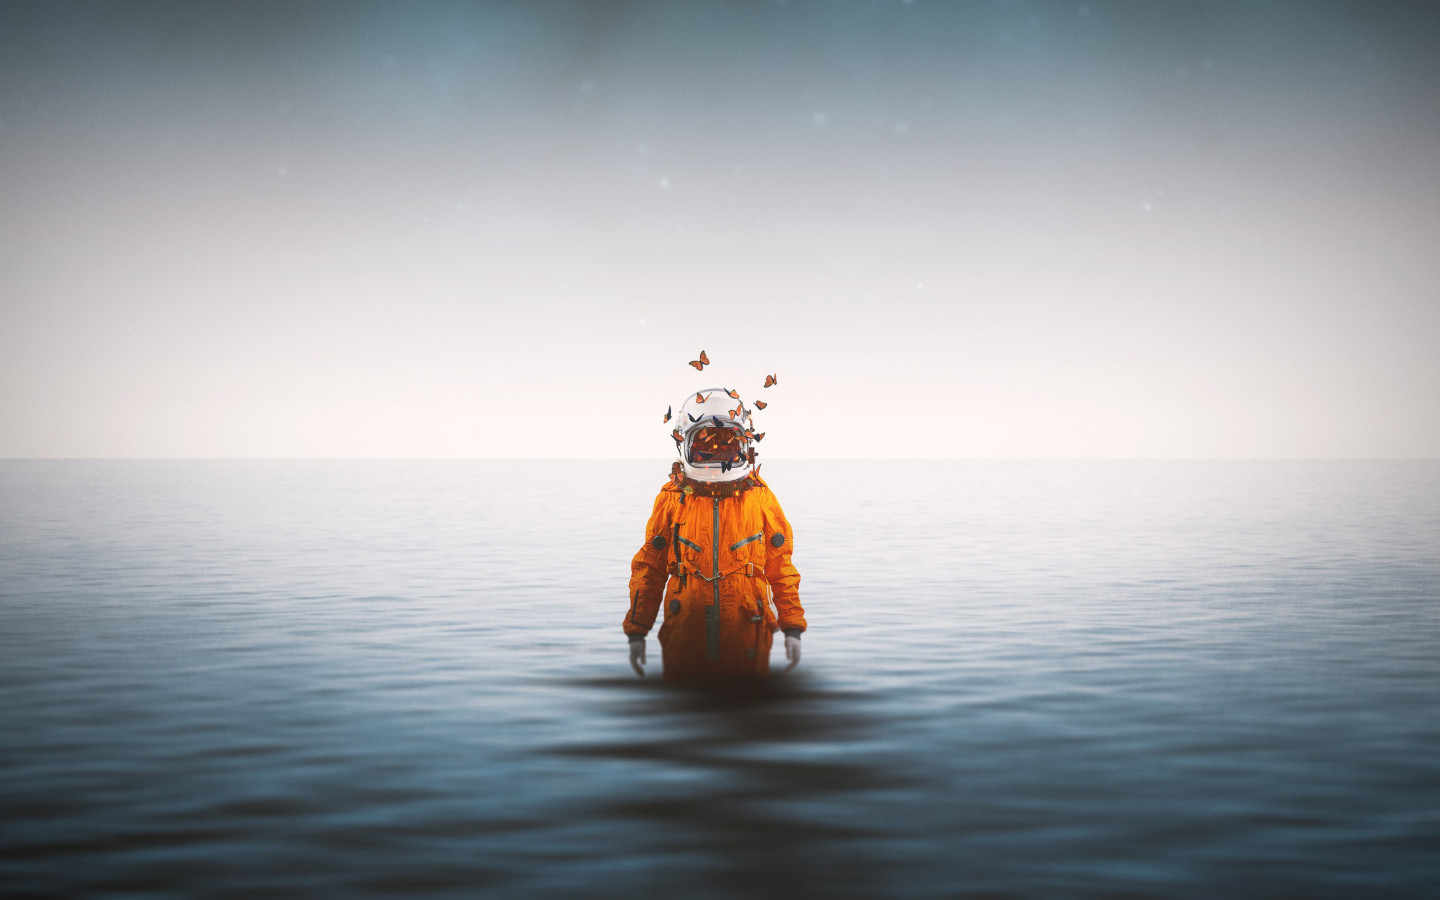 Lonely astronaut wallpaper 1440x900